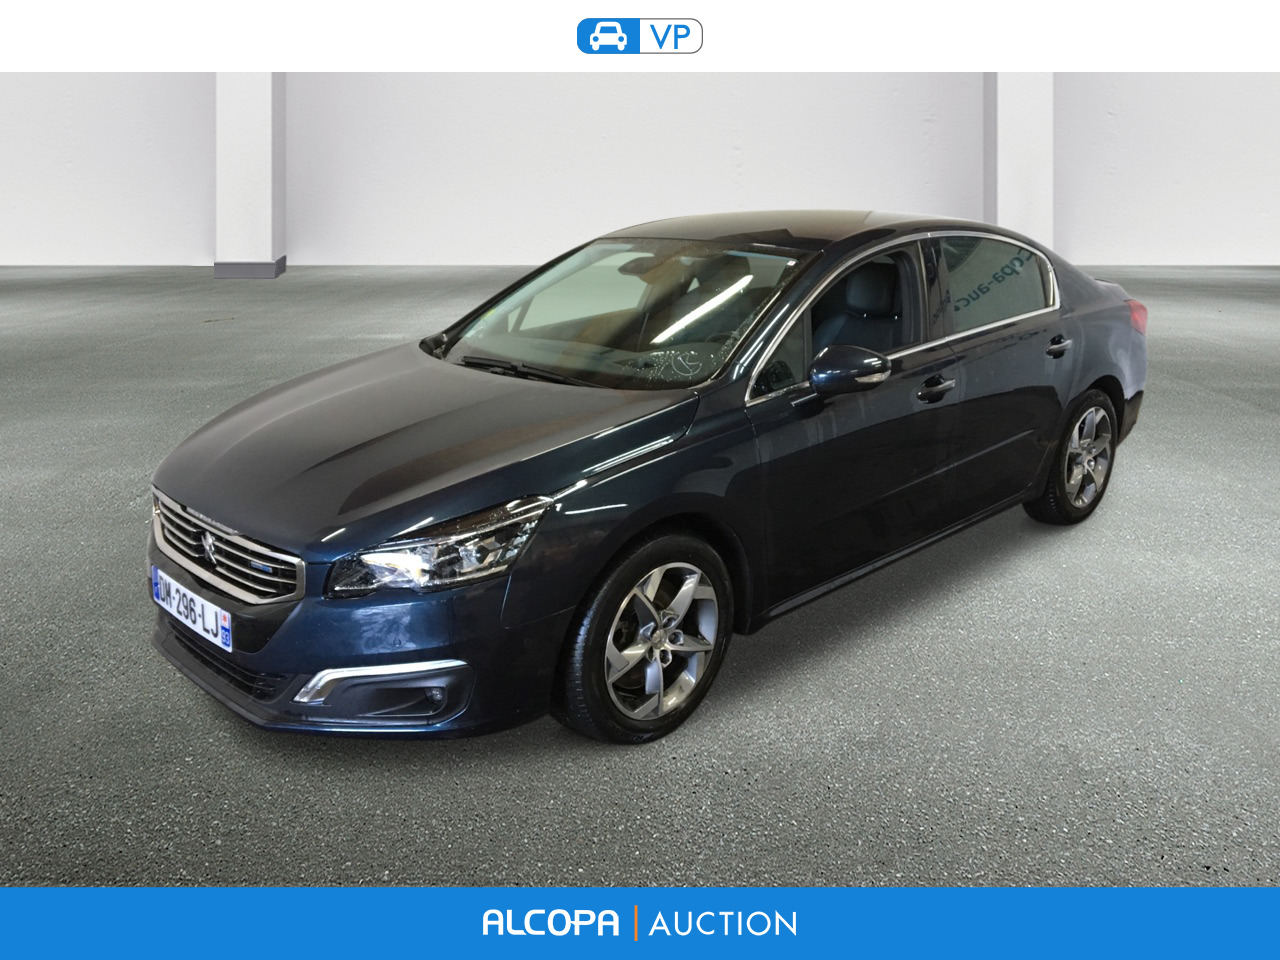 peugeot 508 508 2 0 bluehdi 180ch fap feline eat6 tours alcopa auction. Black Bedroom Furniture Sets. Home Design Ideas